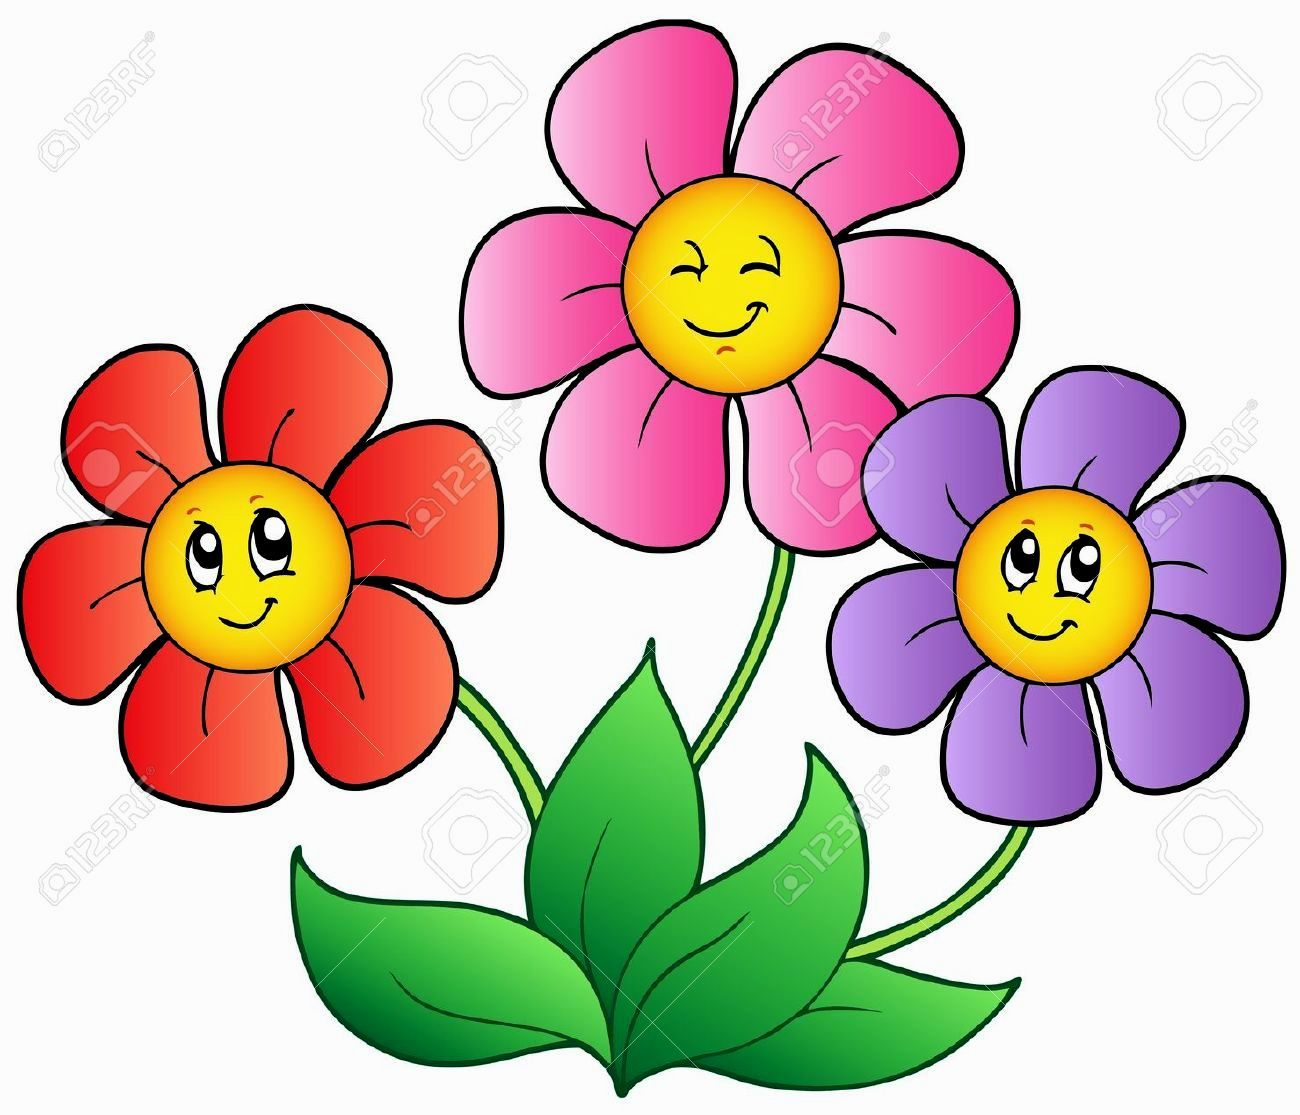 pictures of cartoon flowers visit website for more images rh pinterest com cartoon flower pictures clip art cartoon flower pictures clip art